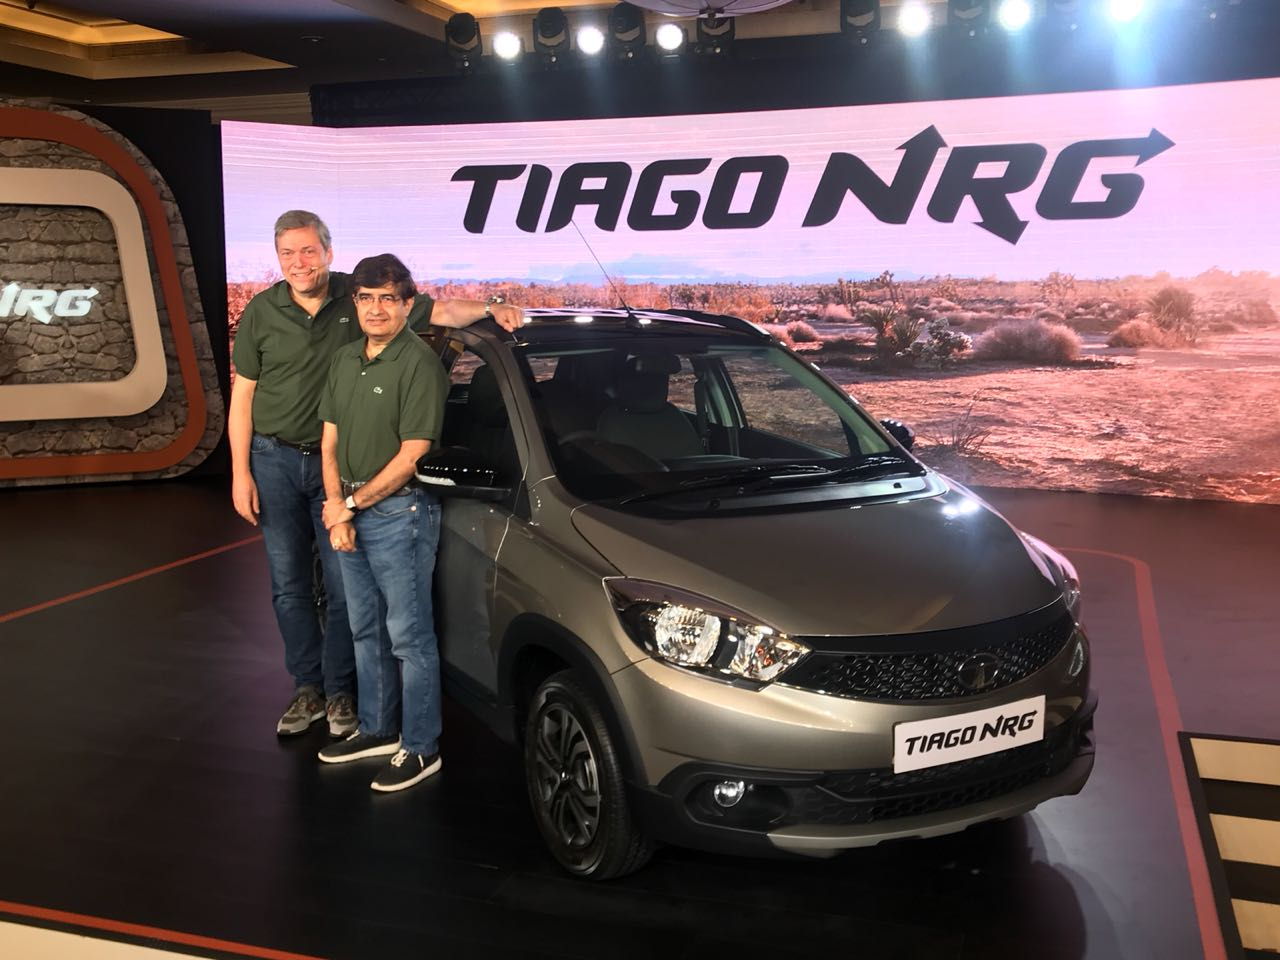 The car is slightly wider, taller and longer than the Tiago hatch. To give it a sporty look Tata Motors has given the NRG a black body kit, in the front, it showcases a two-toned front bumper. The NRG also gets a black roof spoiler.